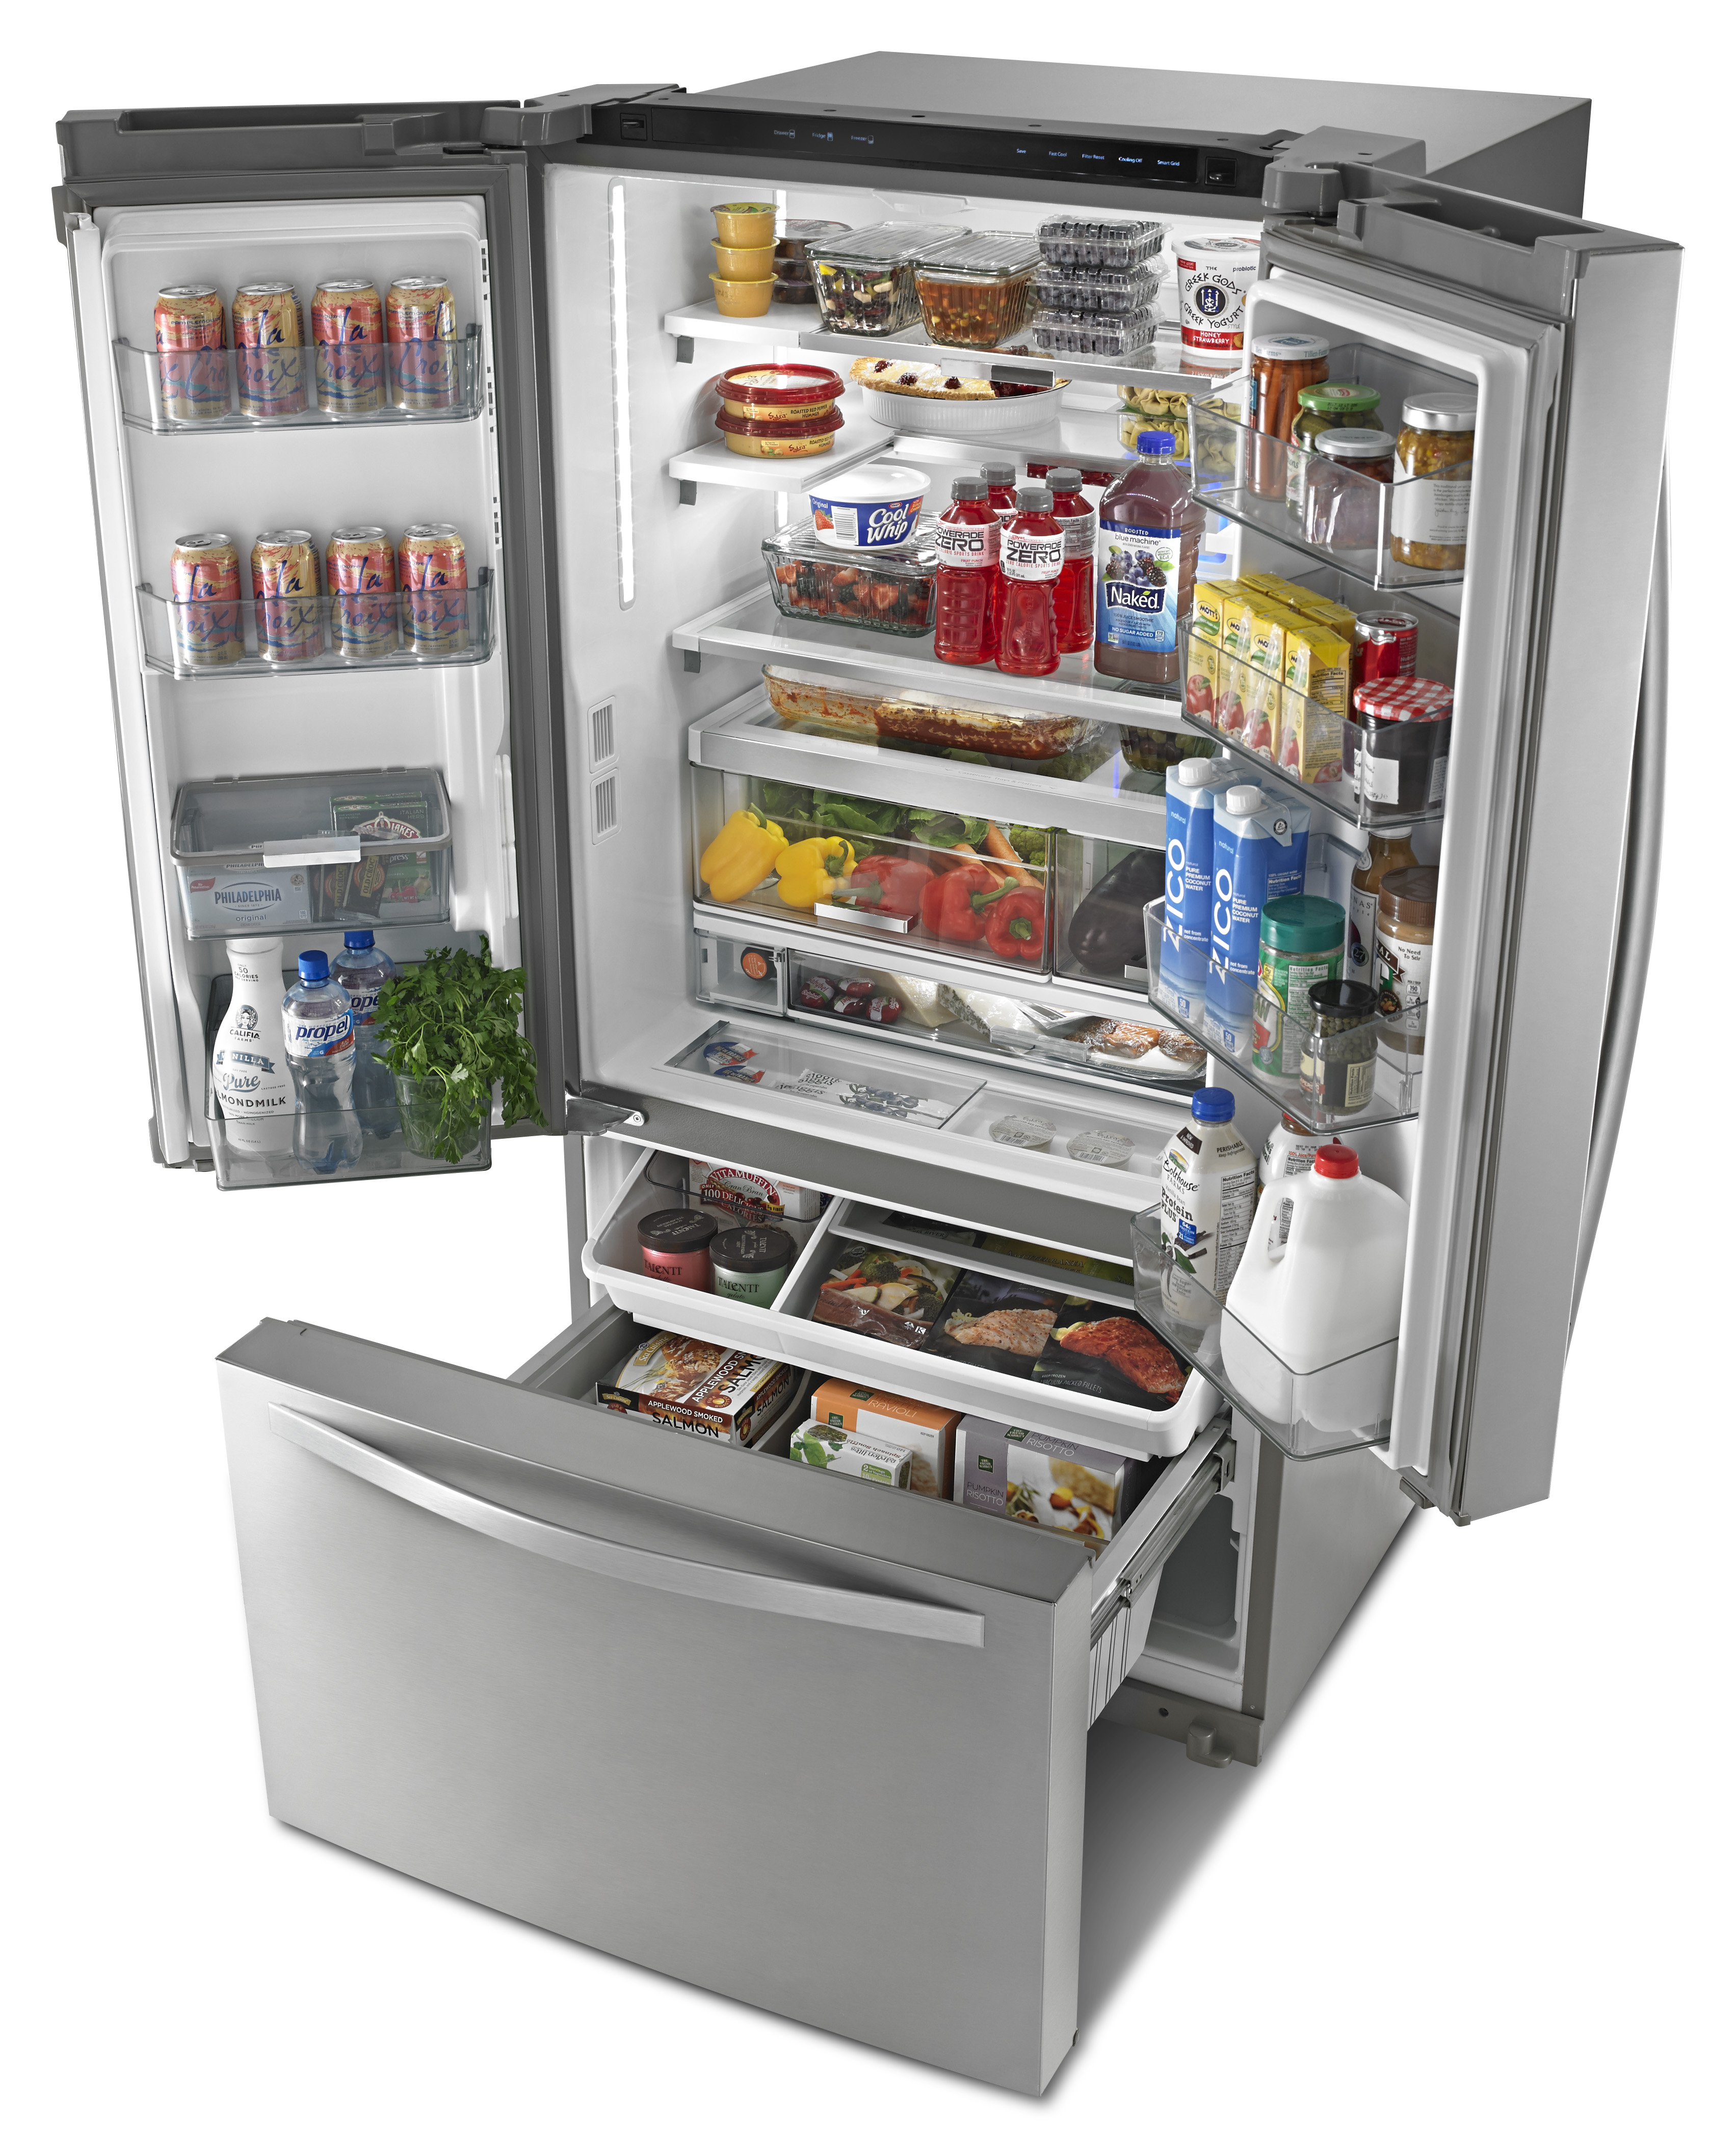 Ces Whirlpool Unveils Revolutionary Pantry Inspired